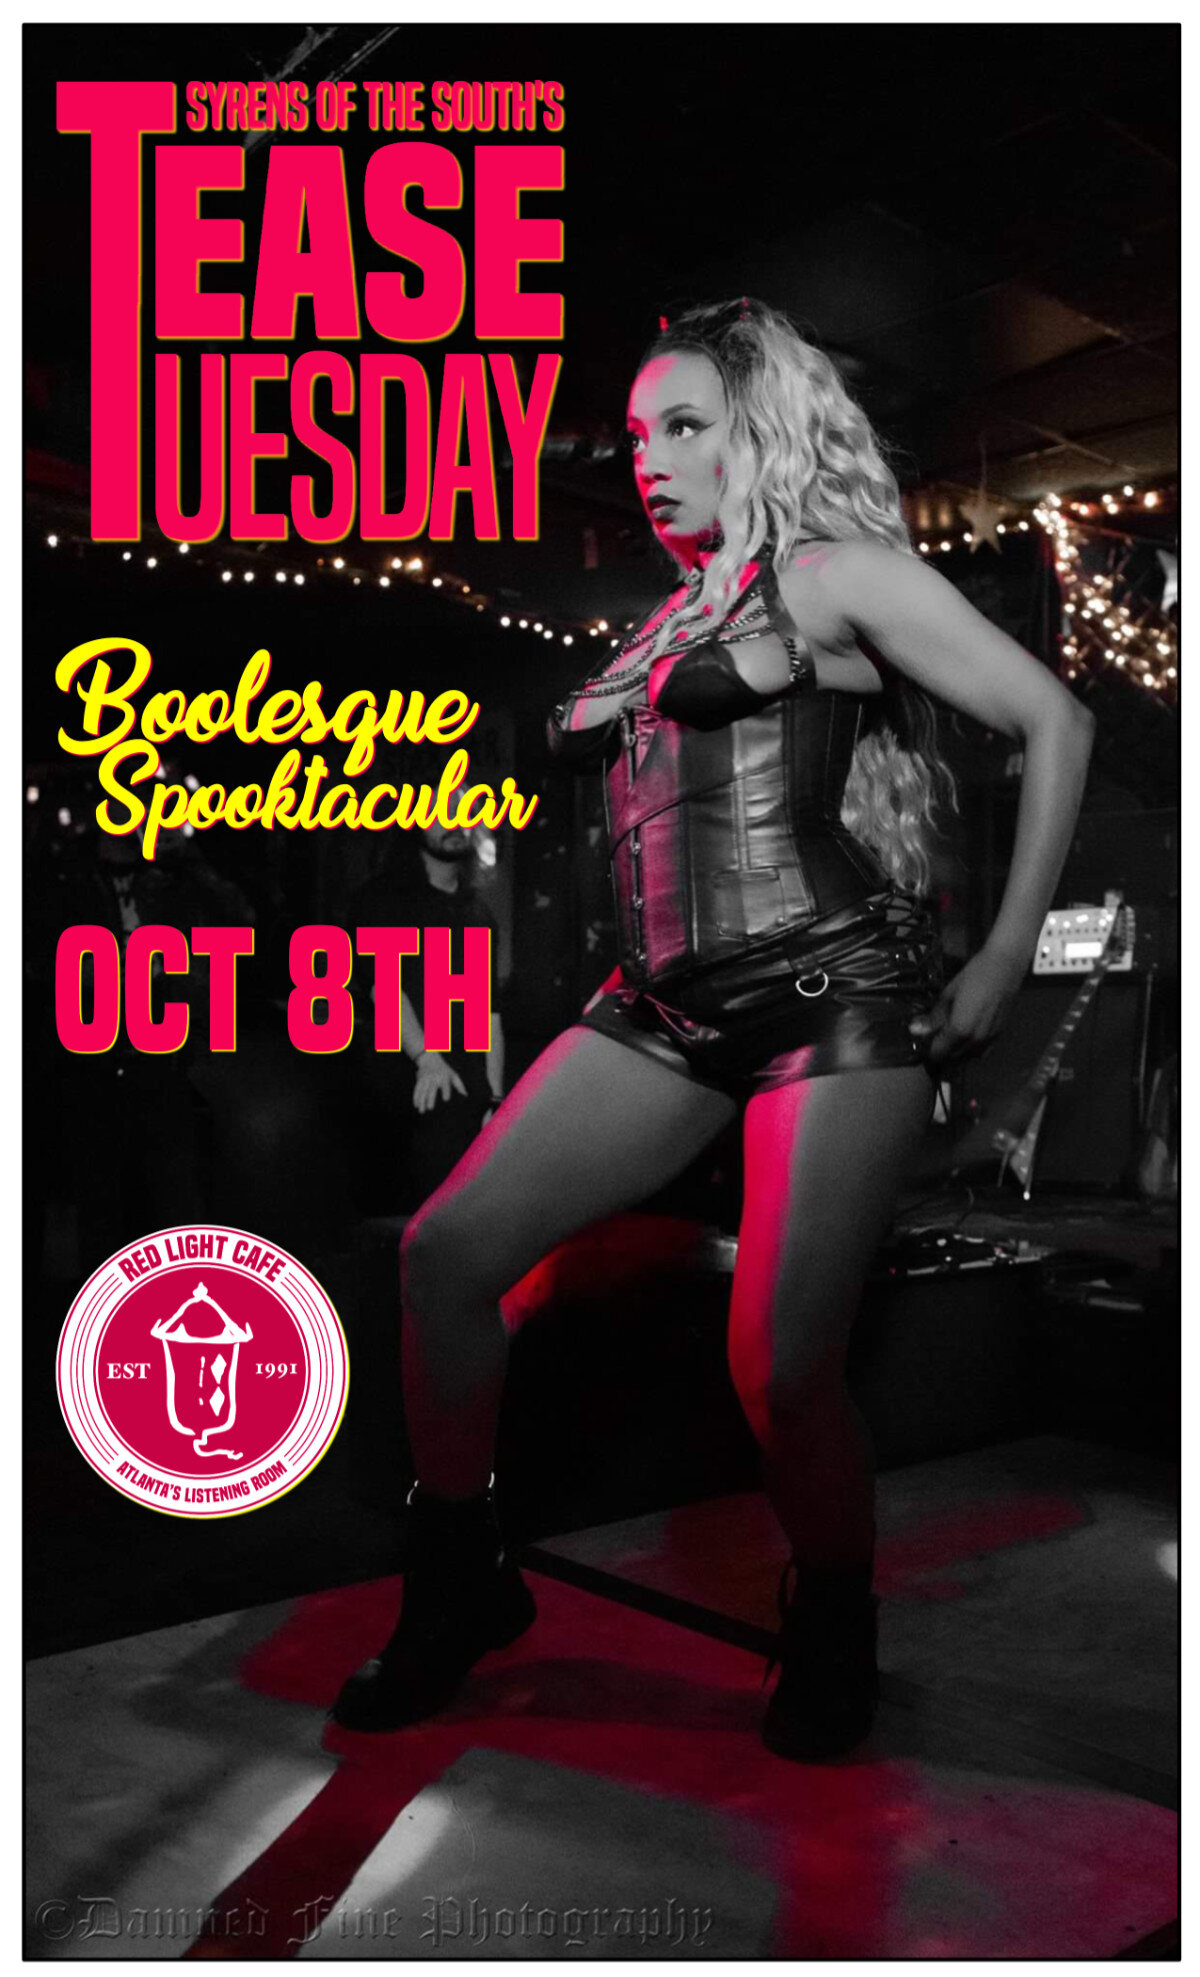 Tease Tuesday Burlesque Boolesque Spooktacular — October 8, 2019 — Red Light Café, Atlanta, GA